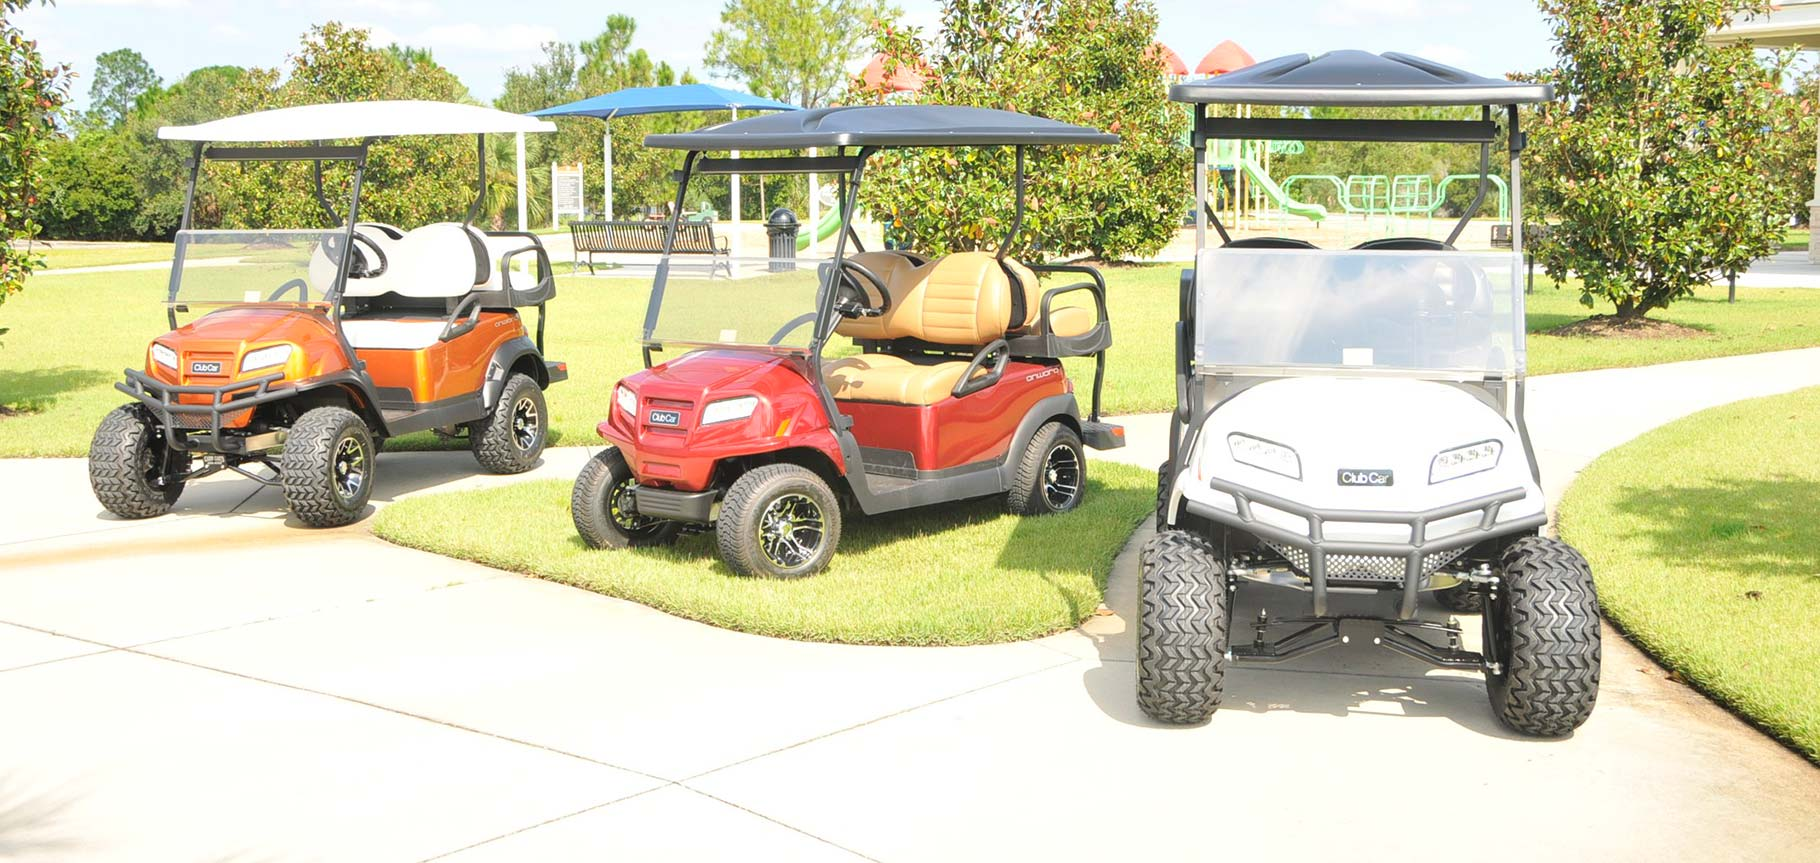 Line of 3 golf carts image